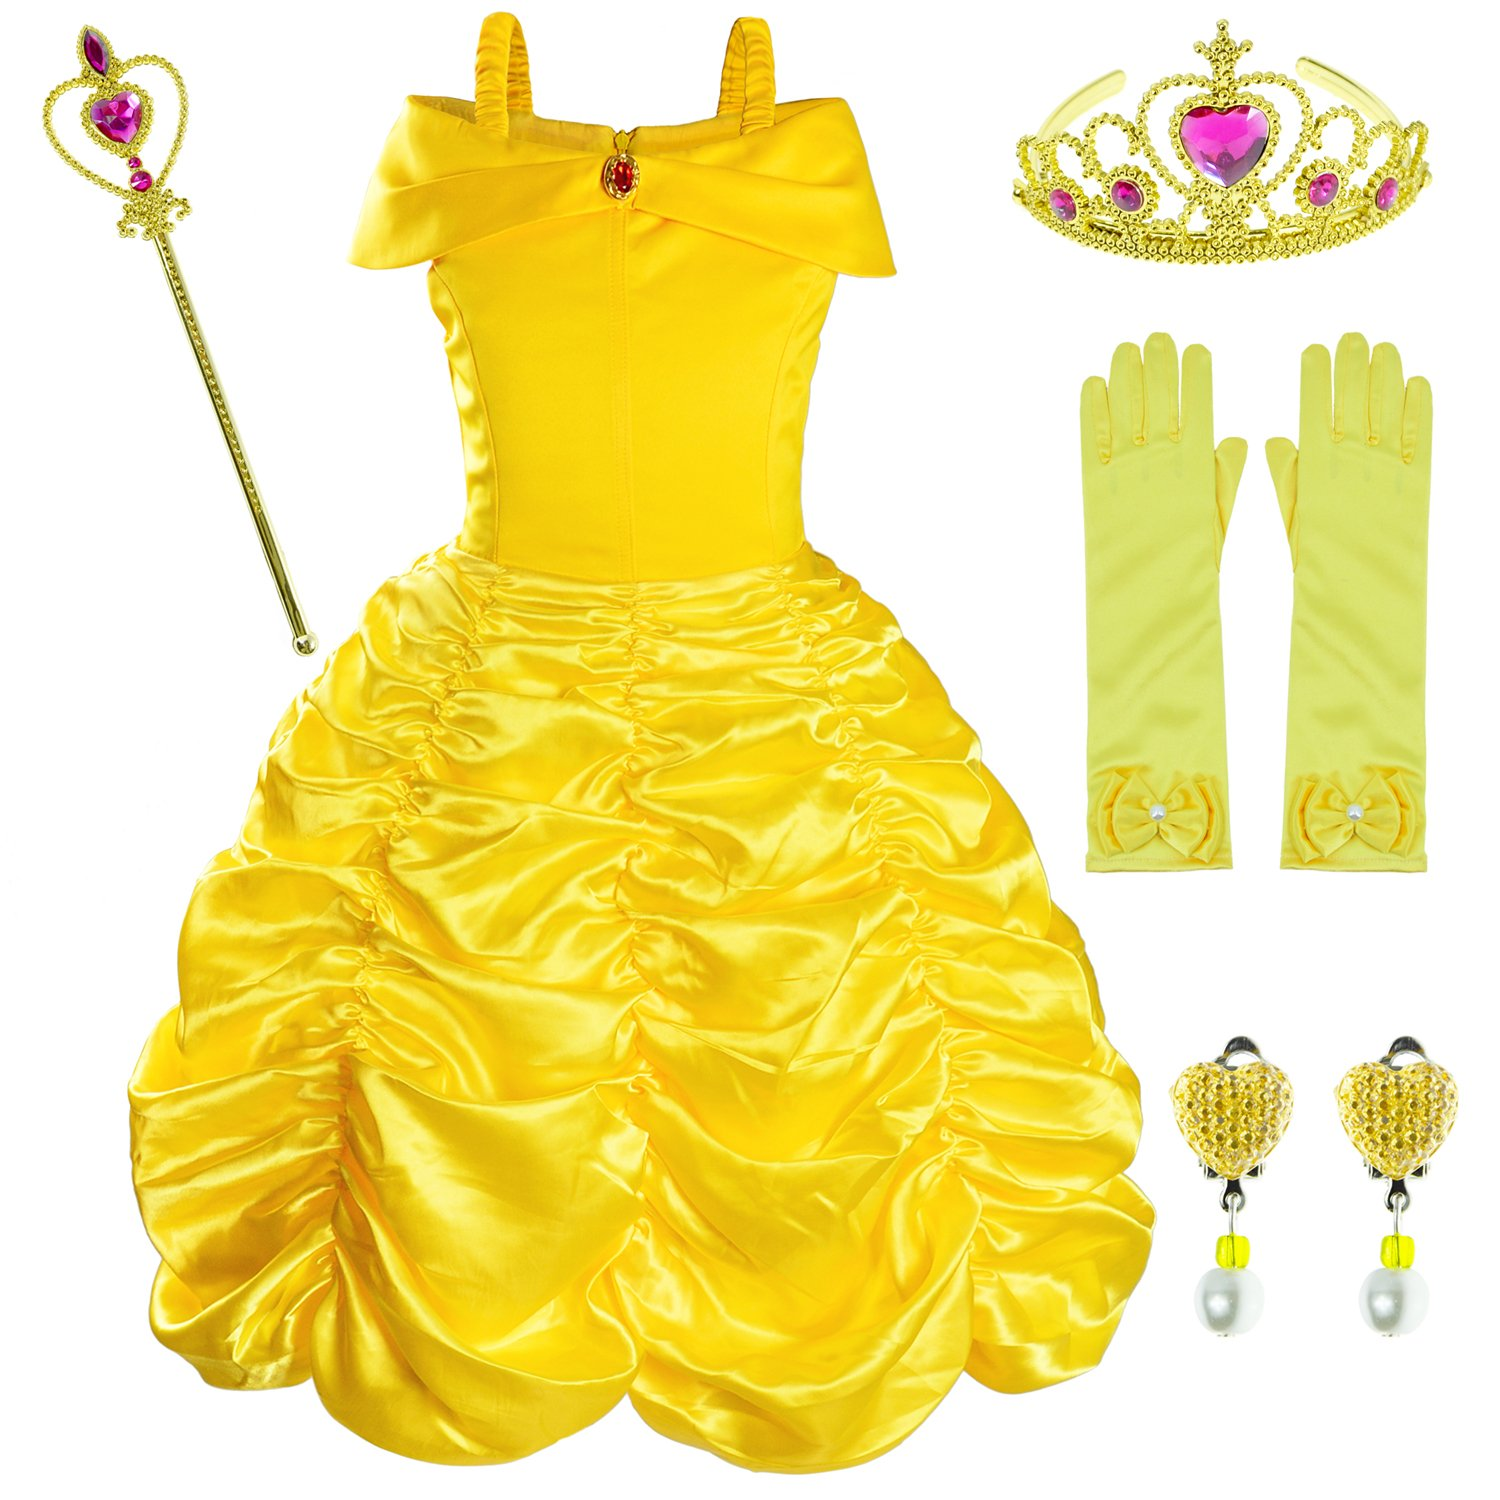 Princess Belle Costume Birthday Party Fancy Dress Up For Girls with Accessories(Crown+Wand+Earrings+Gloves)5-6 Years(125cm)